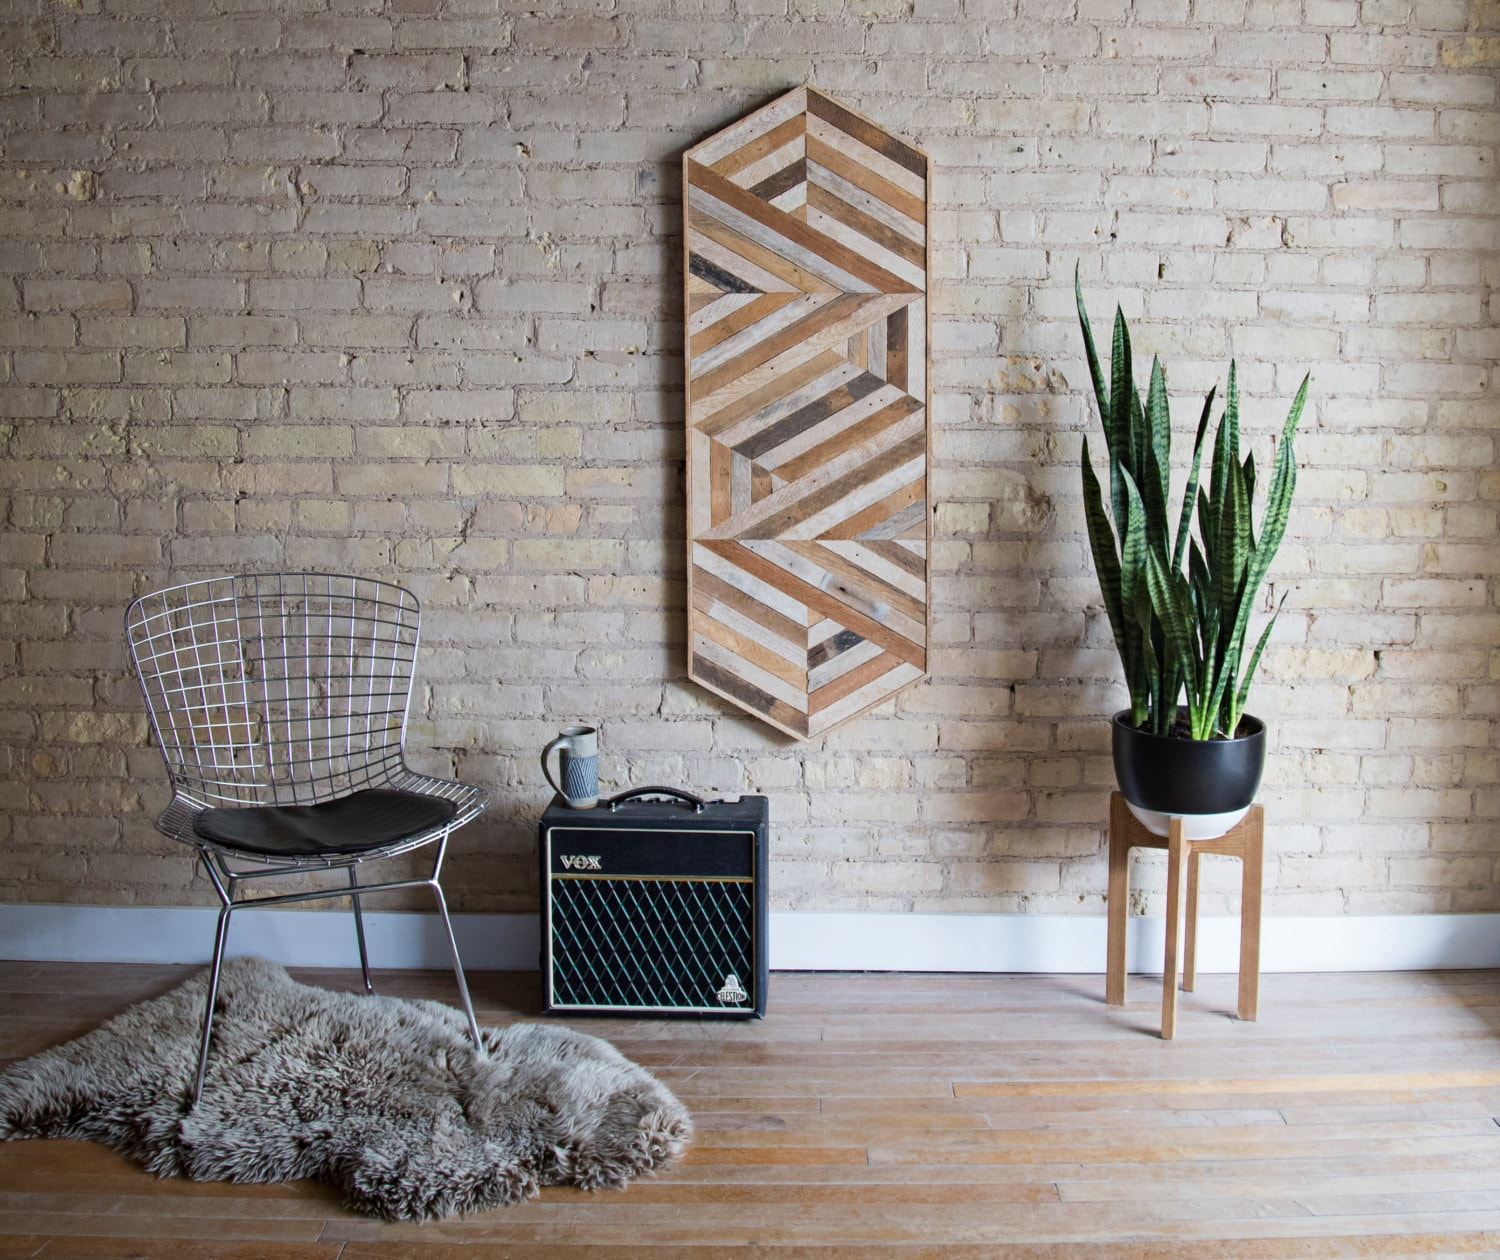 Reclaimed Wood Wall Art Wood Wall Art Reclaimed Wood